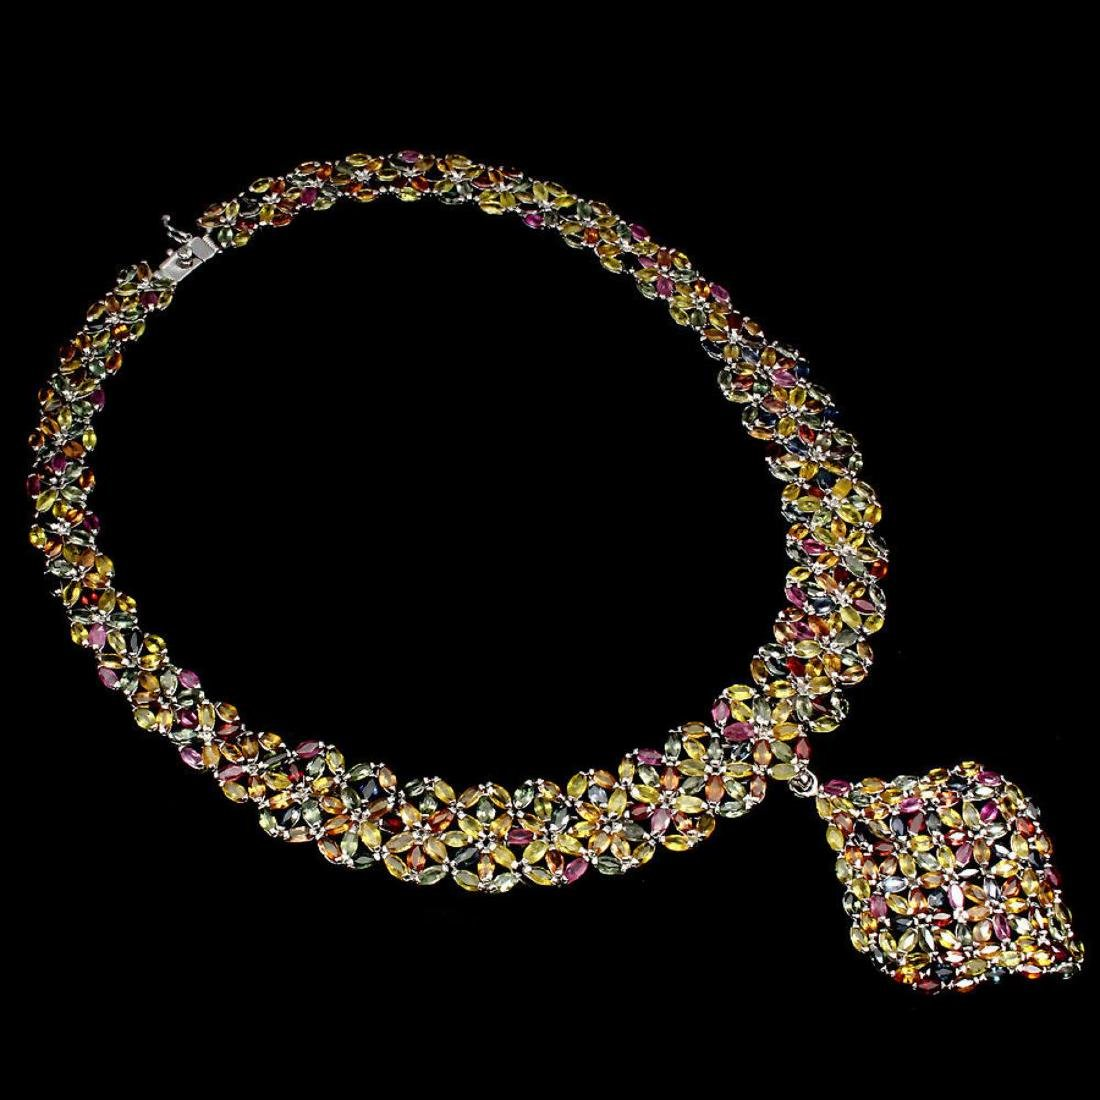 Natural Fancy Sapphire 563 Carats Necklace - 2